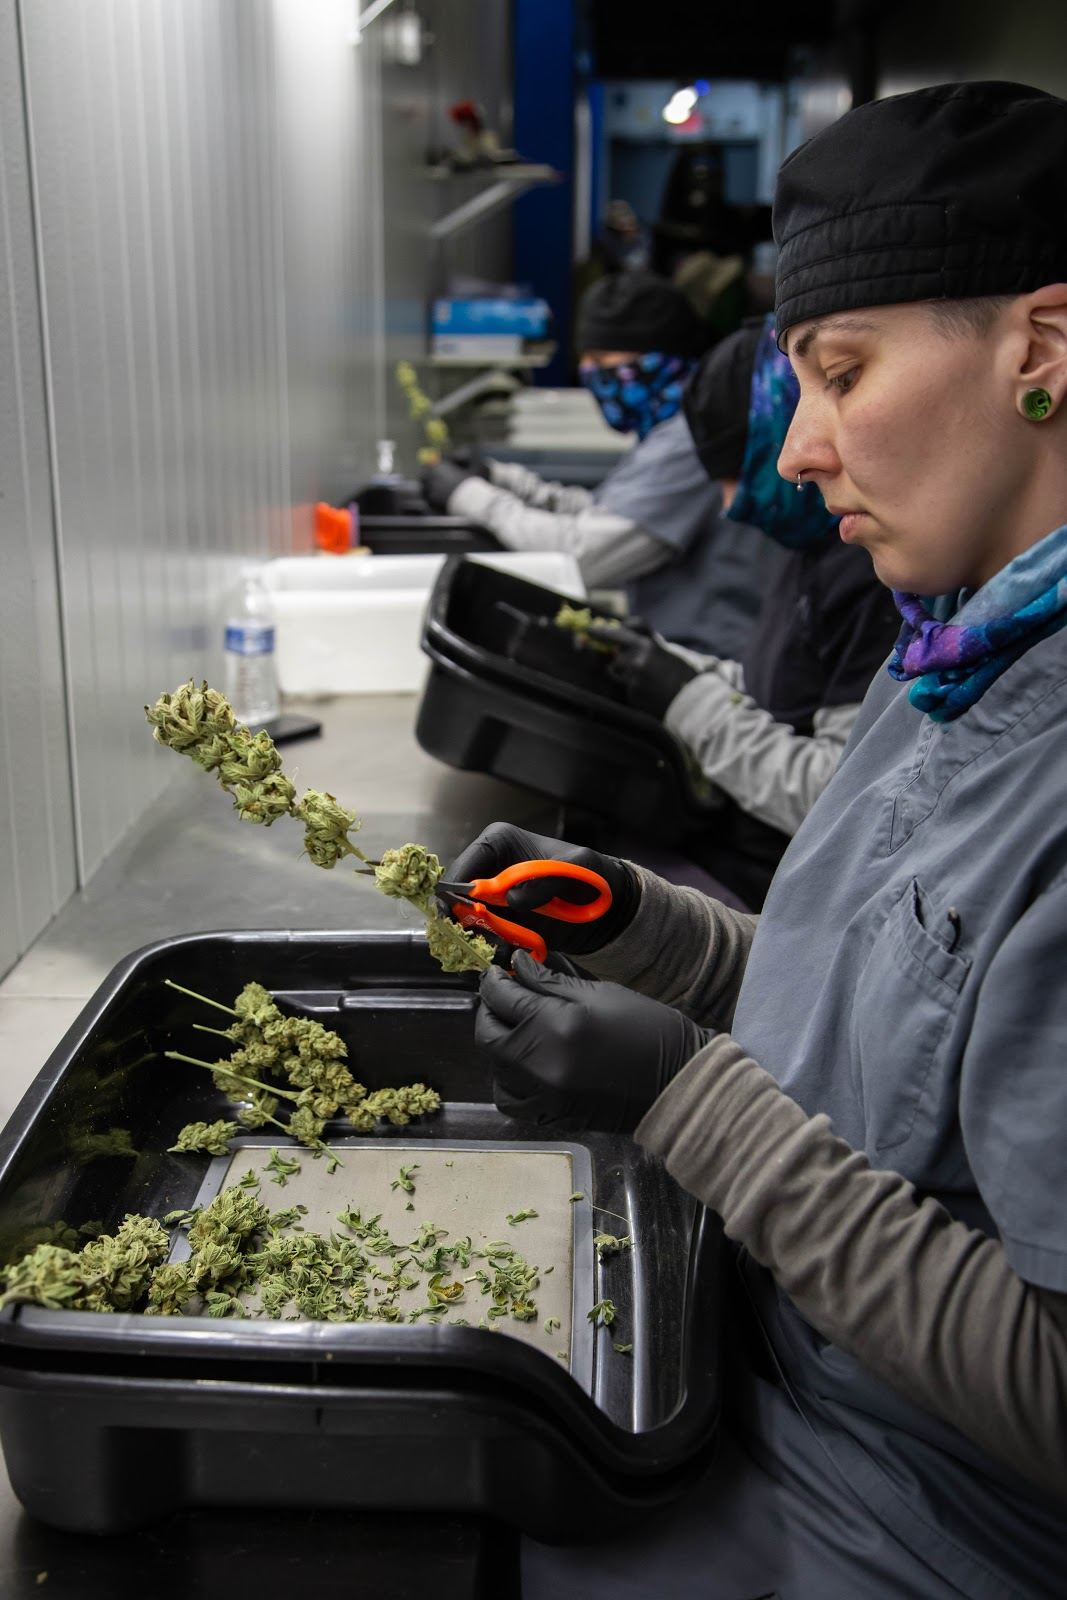 2019_02_06_HandTrimming_Cultivation_Flowering_Harmony_Dispensary_Cannabis_Marijuana_05.jpg